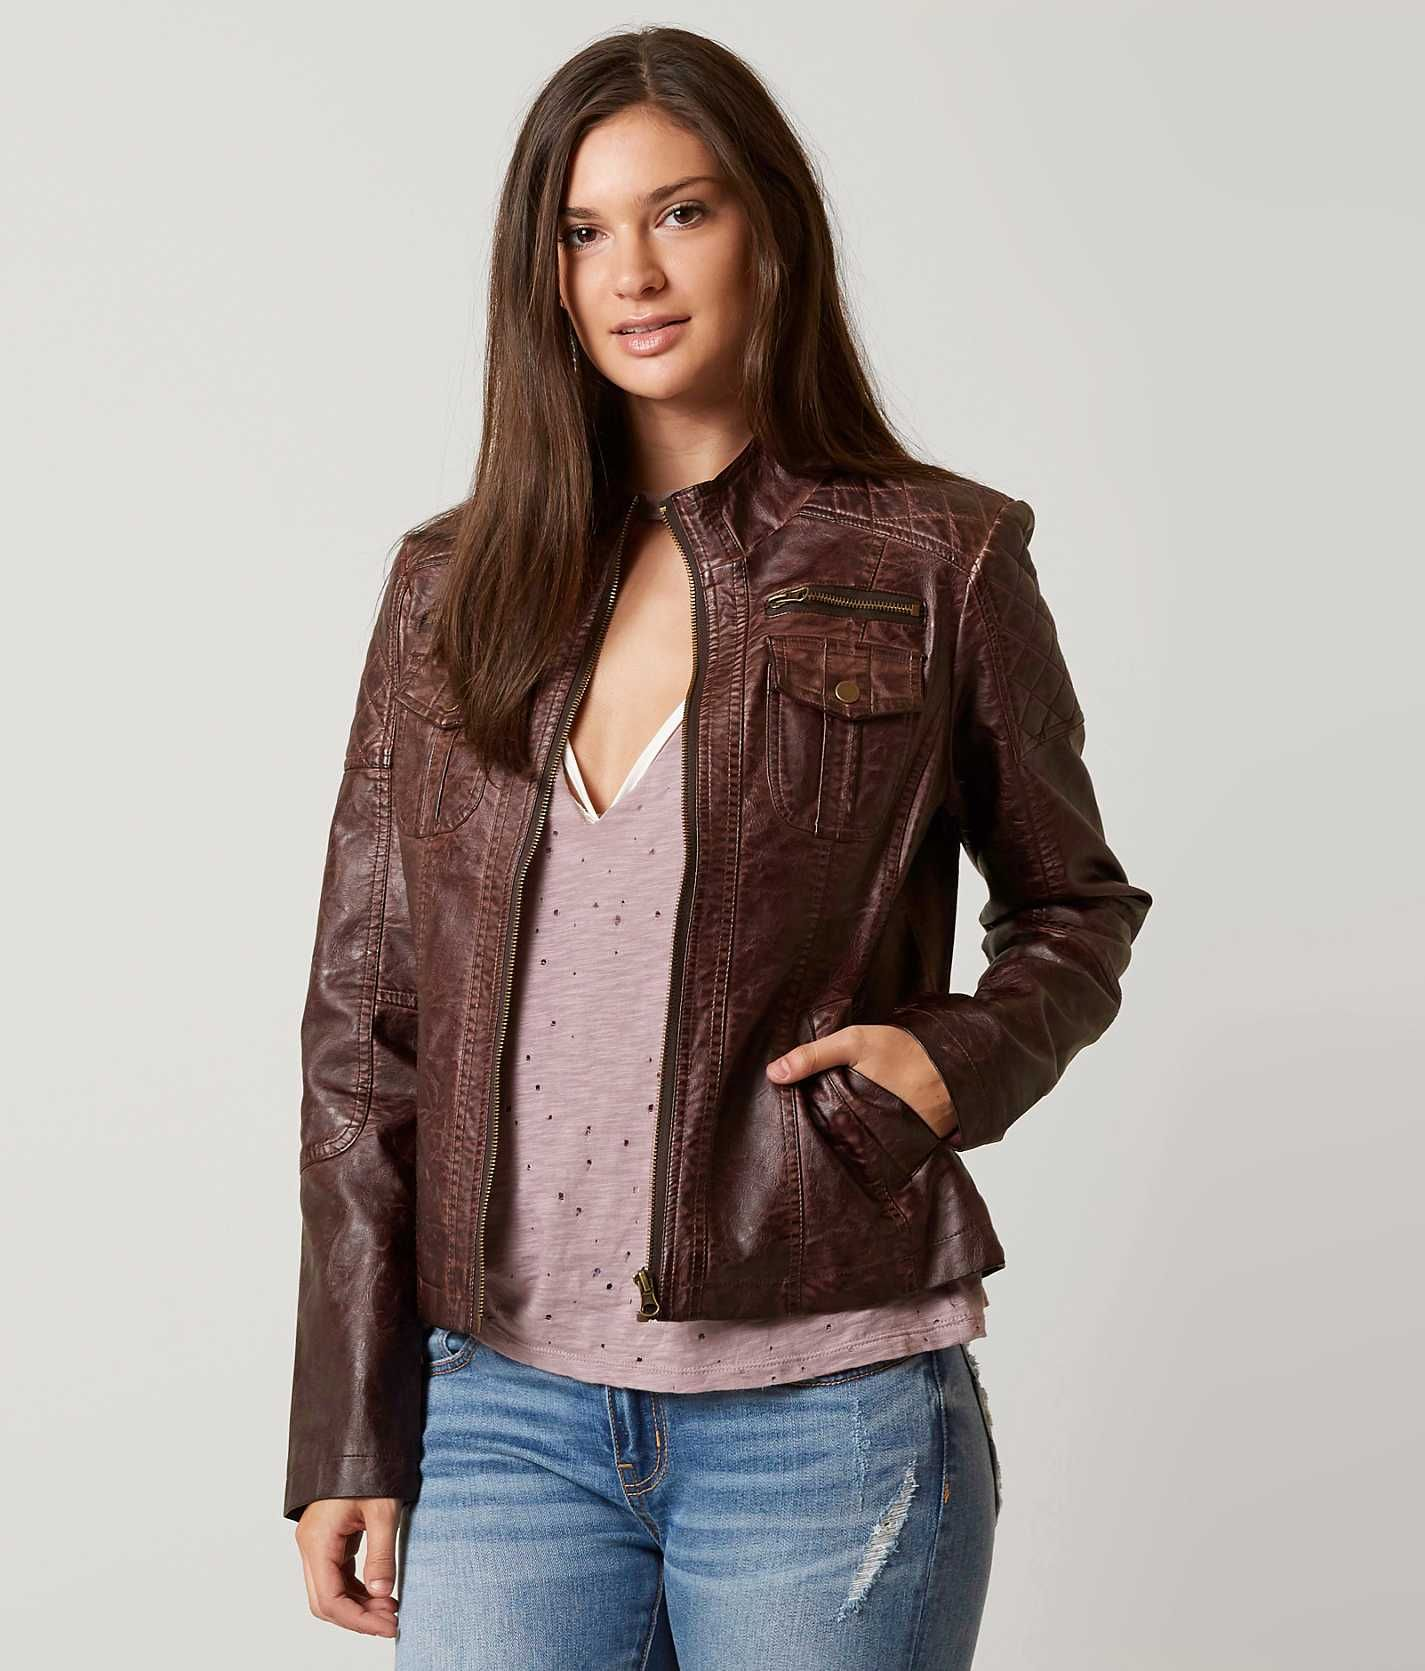 BKE Faux Leather Jacket Women's Coats/Jackets in Washed